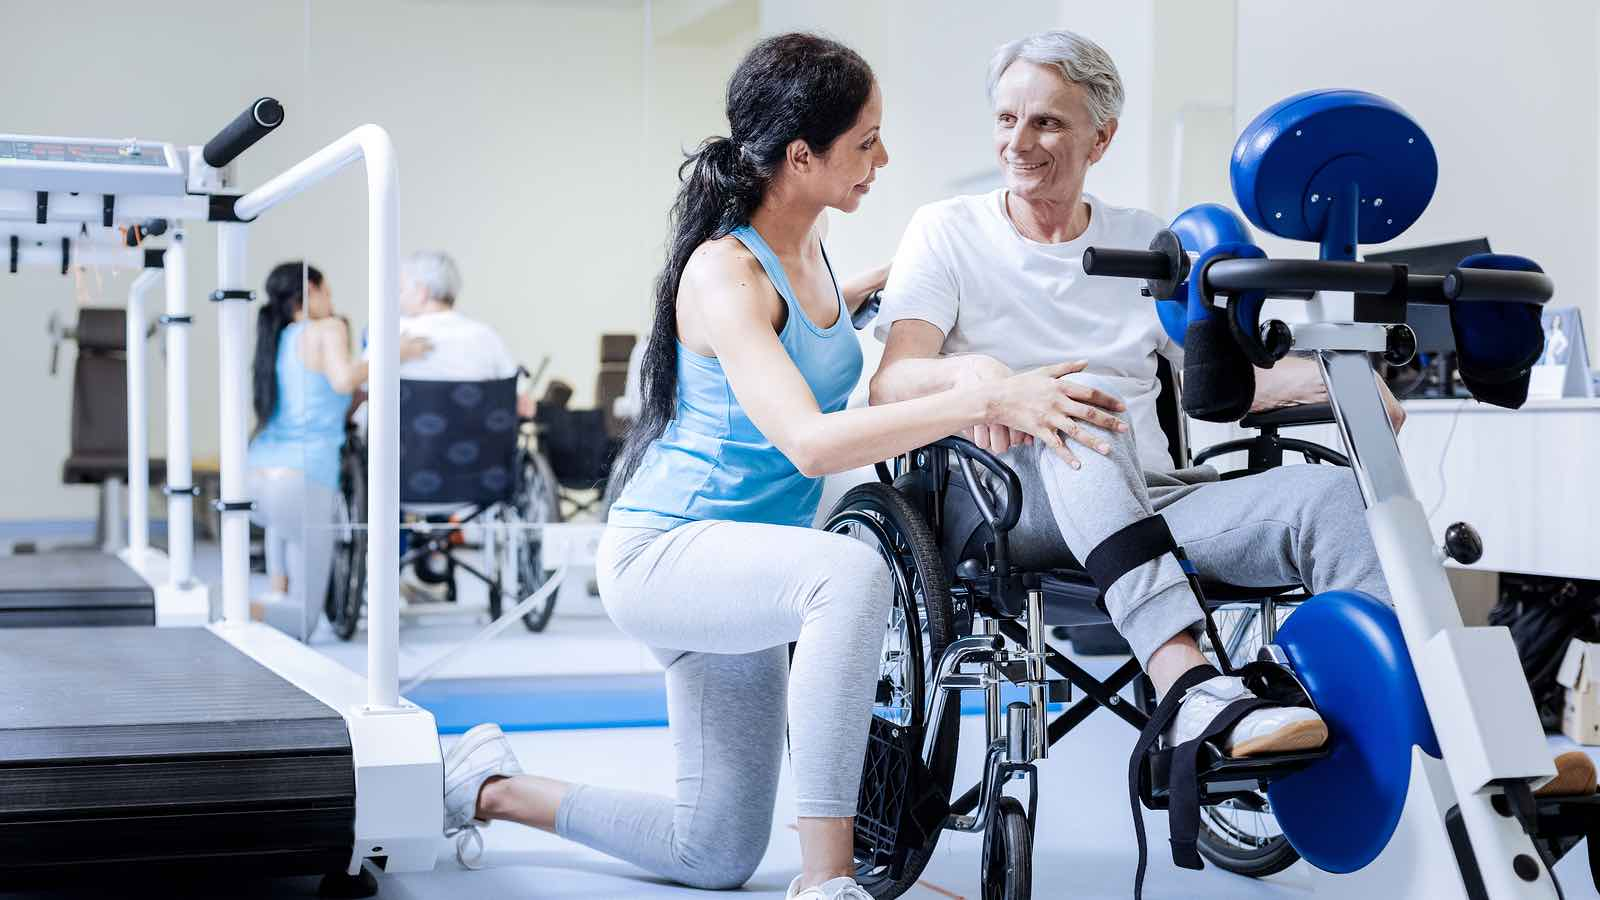 Management of Spinal Cord Injury - Explore evidence based approaches to SCI treatment